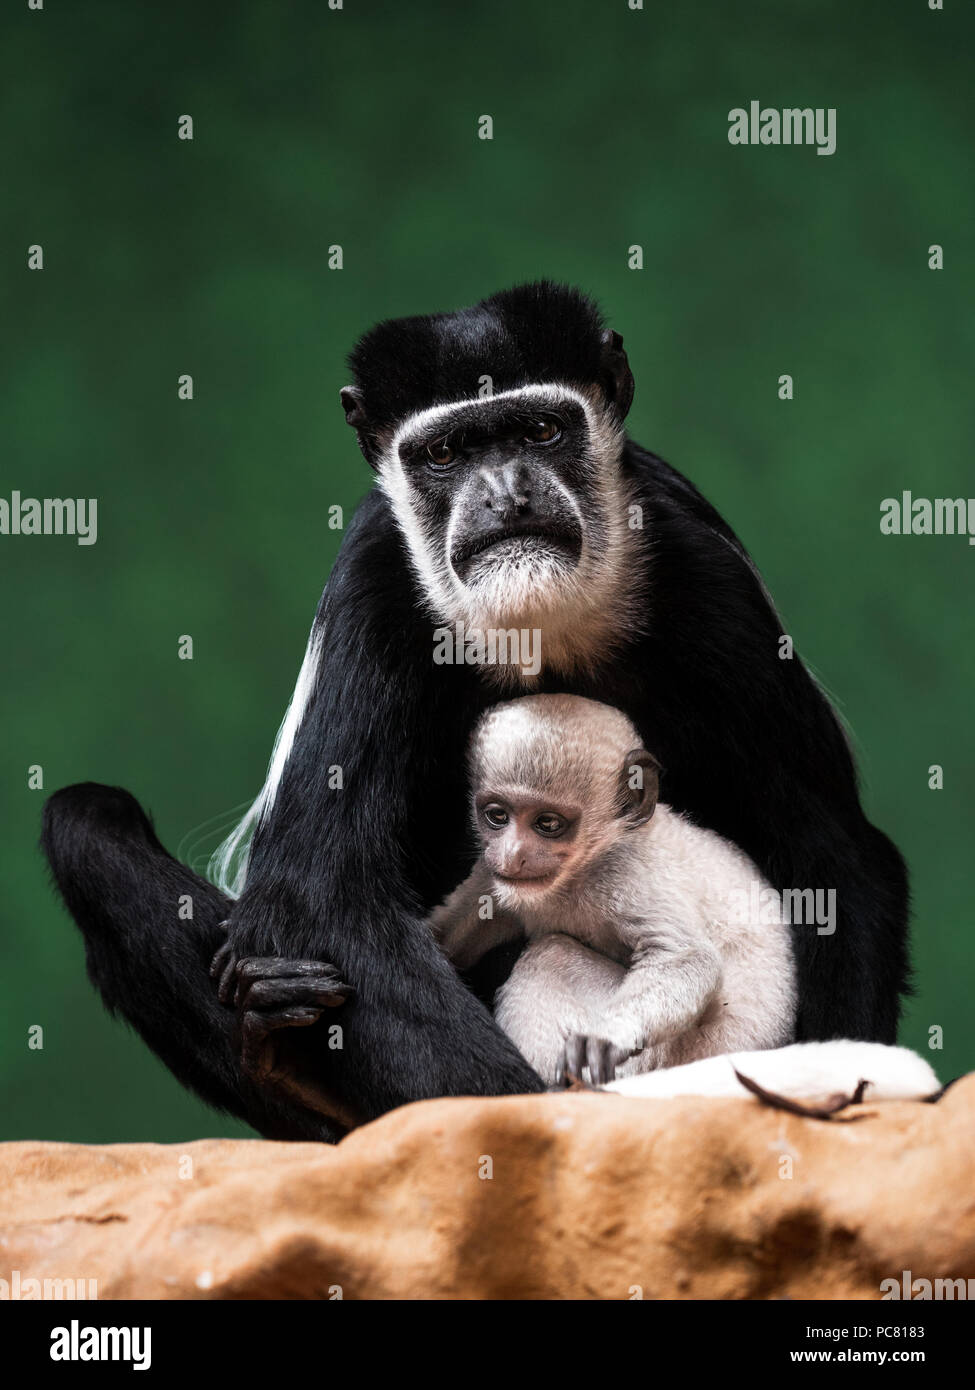 Black-and-white colobuses (or colobi) are Old World monkeys of the genus Colobus, native to Africa. - Stock Image